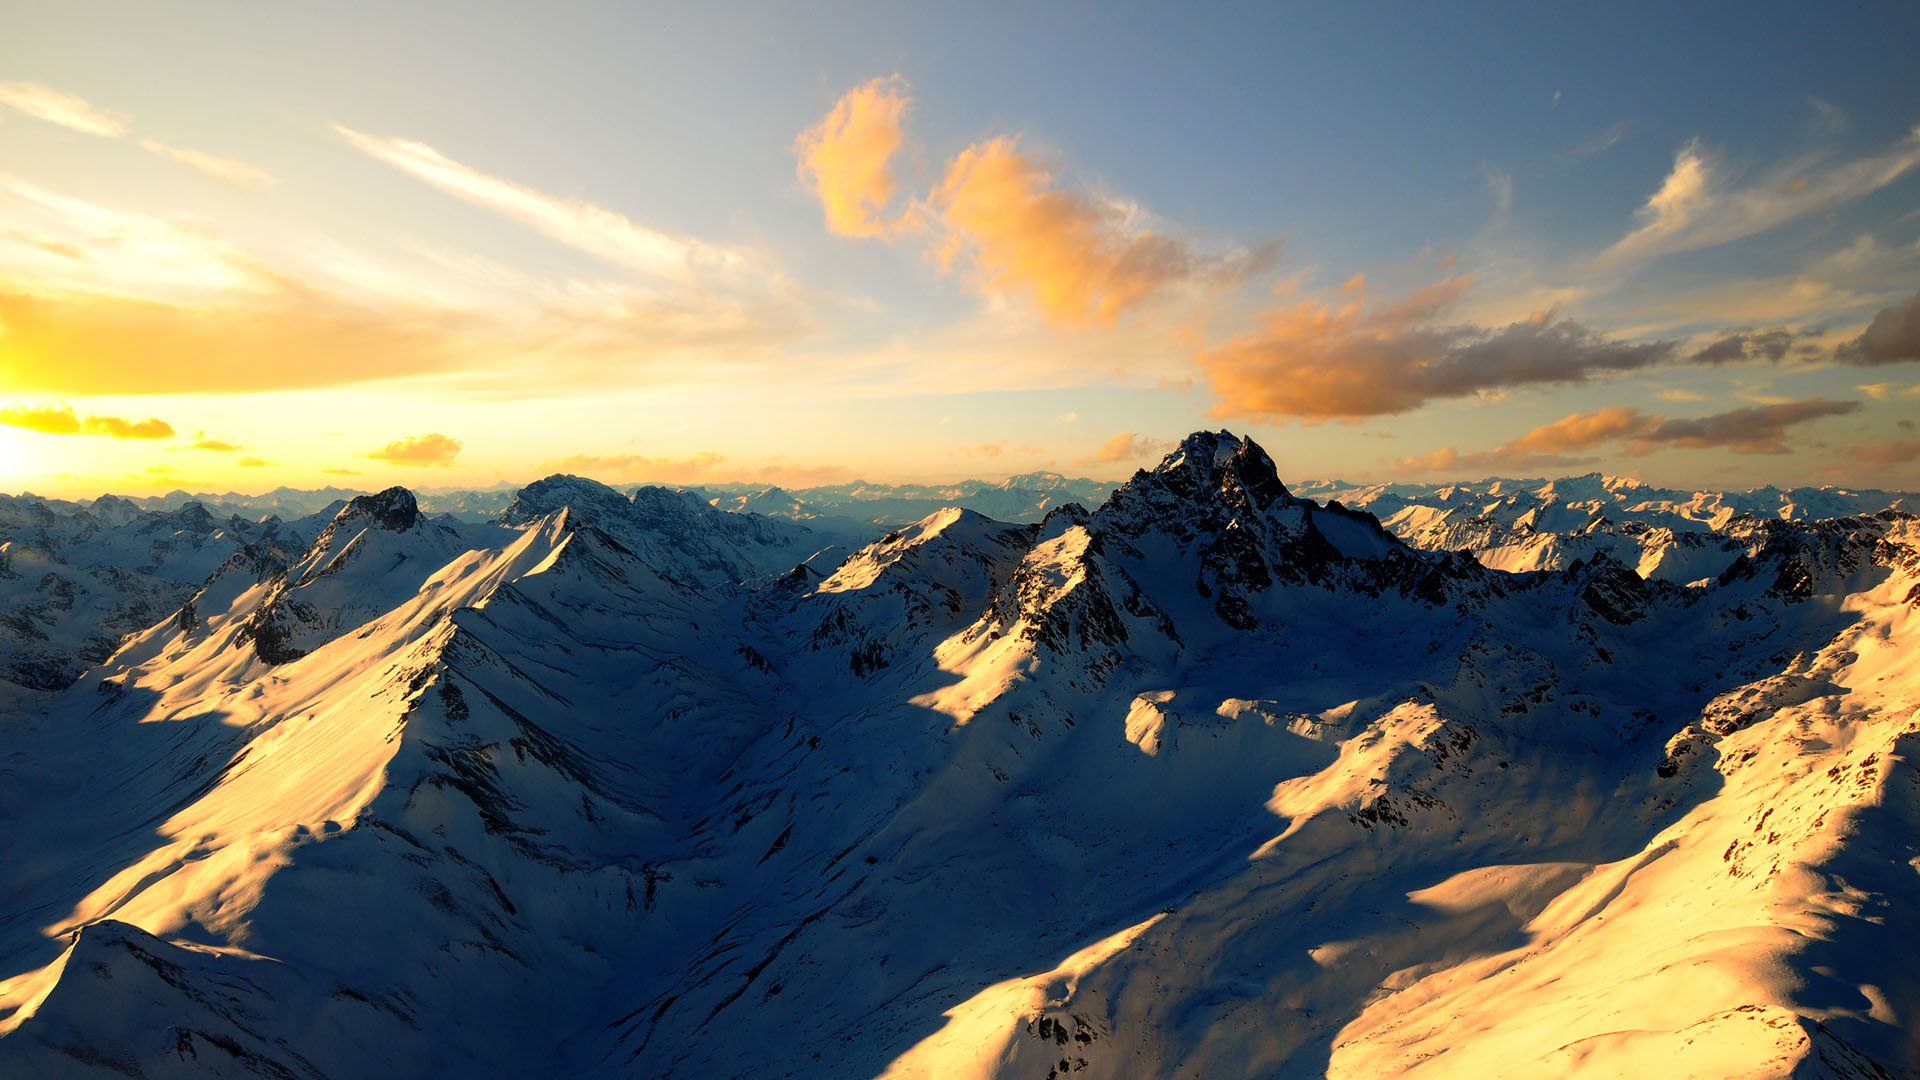 Free Desktop Wallpapers Backgrounds Snow Mountain Wallpapers